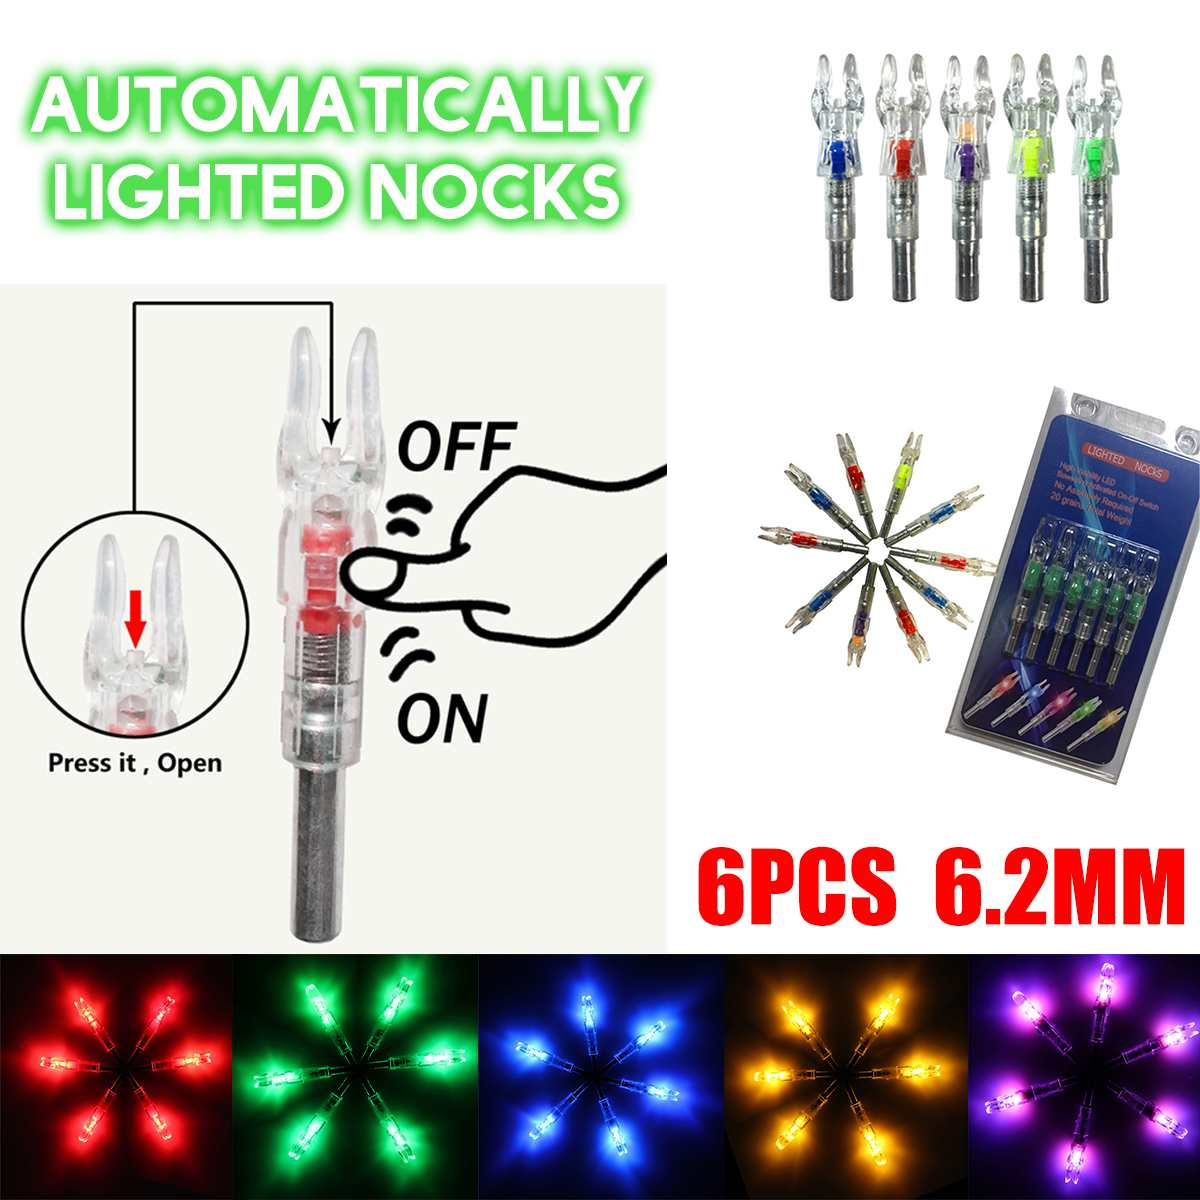 3/6pcs Automatically Lighted Bow String Activated LED Lighted Nock For 4.2/5.3/6.2/7.6 mm y Arrow Accessory Shooting New